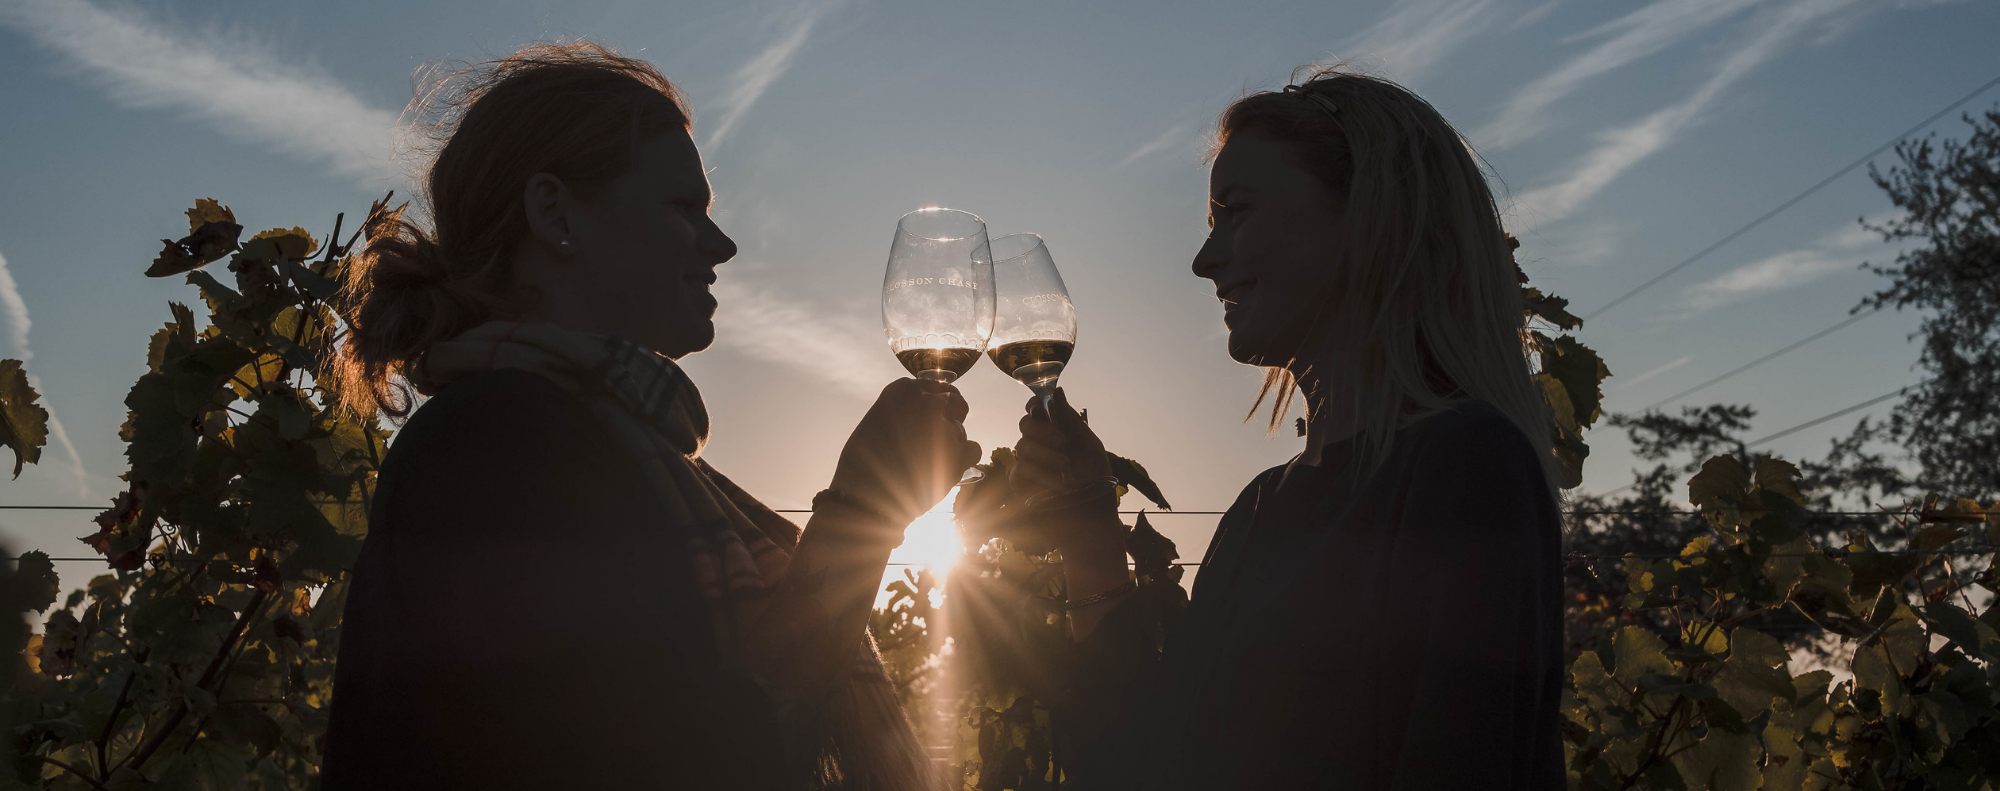 Two women in silhouette in foreground toast each other with wine glasses. Sun peeking through grape vines in background.